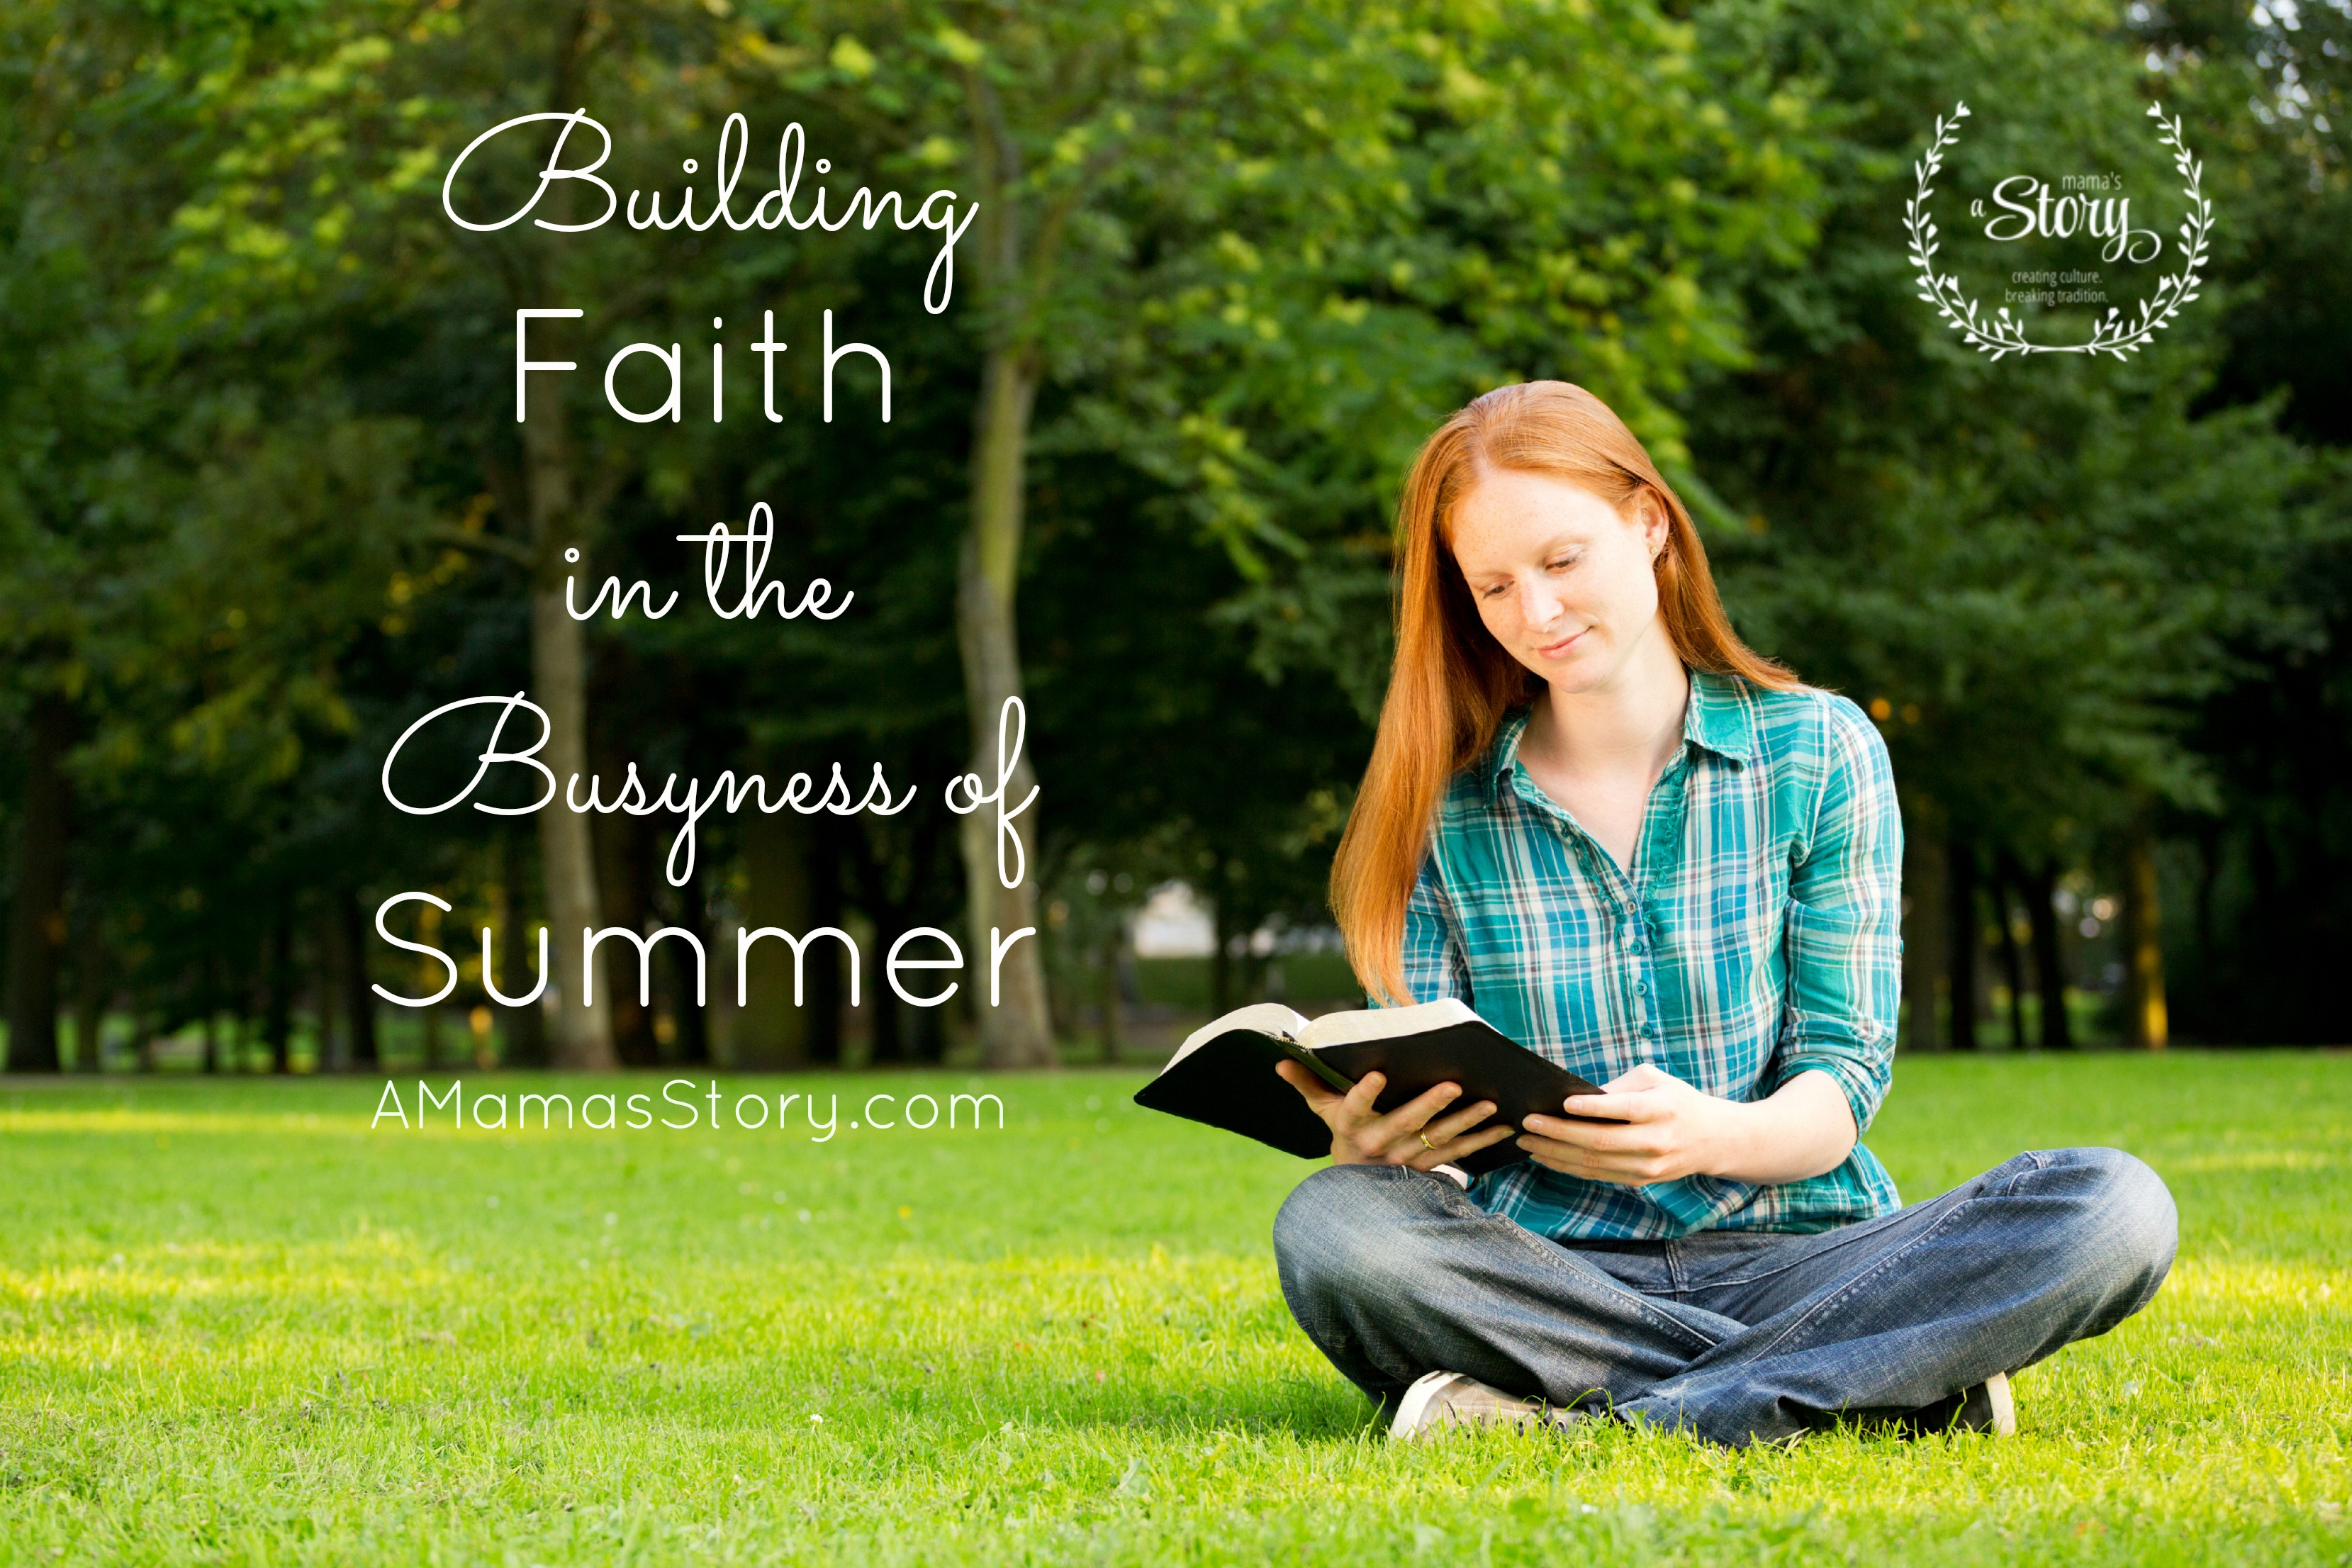 Building Faith in the Busyness of Summer